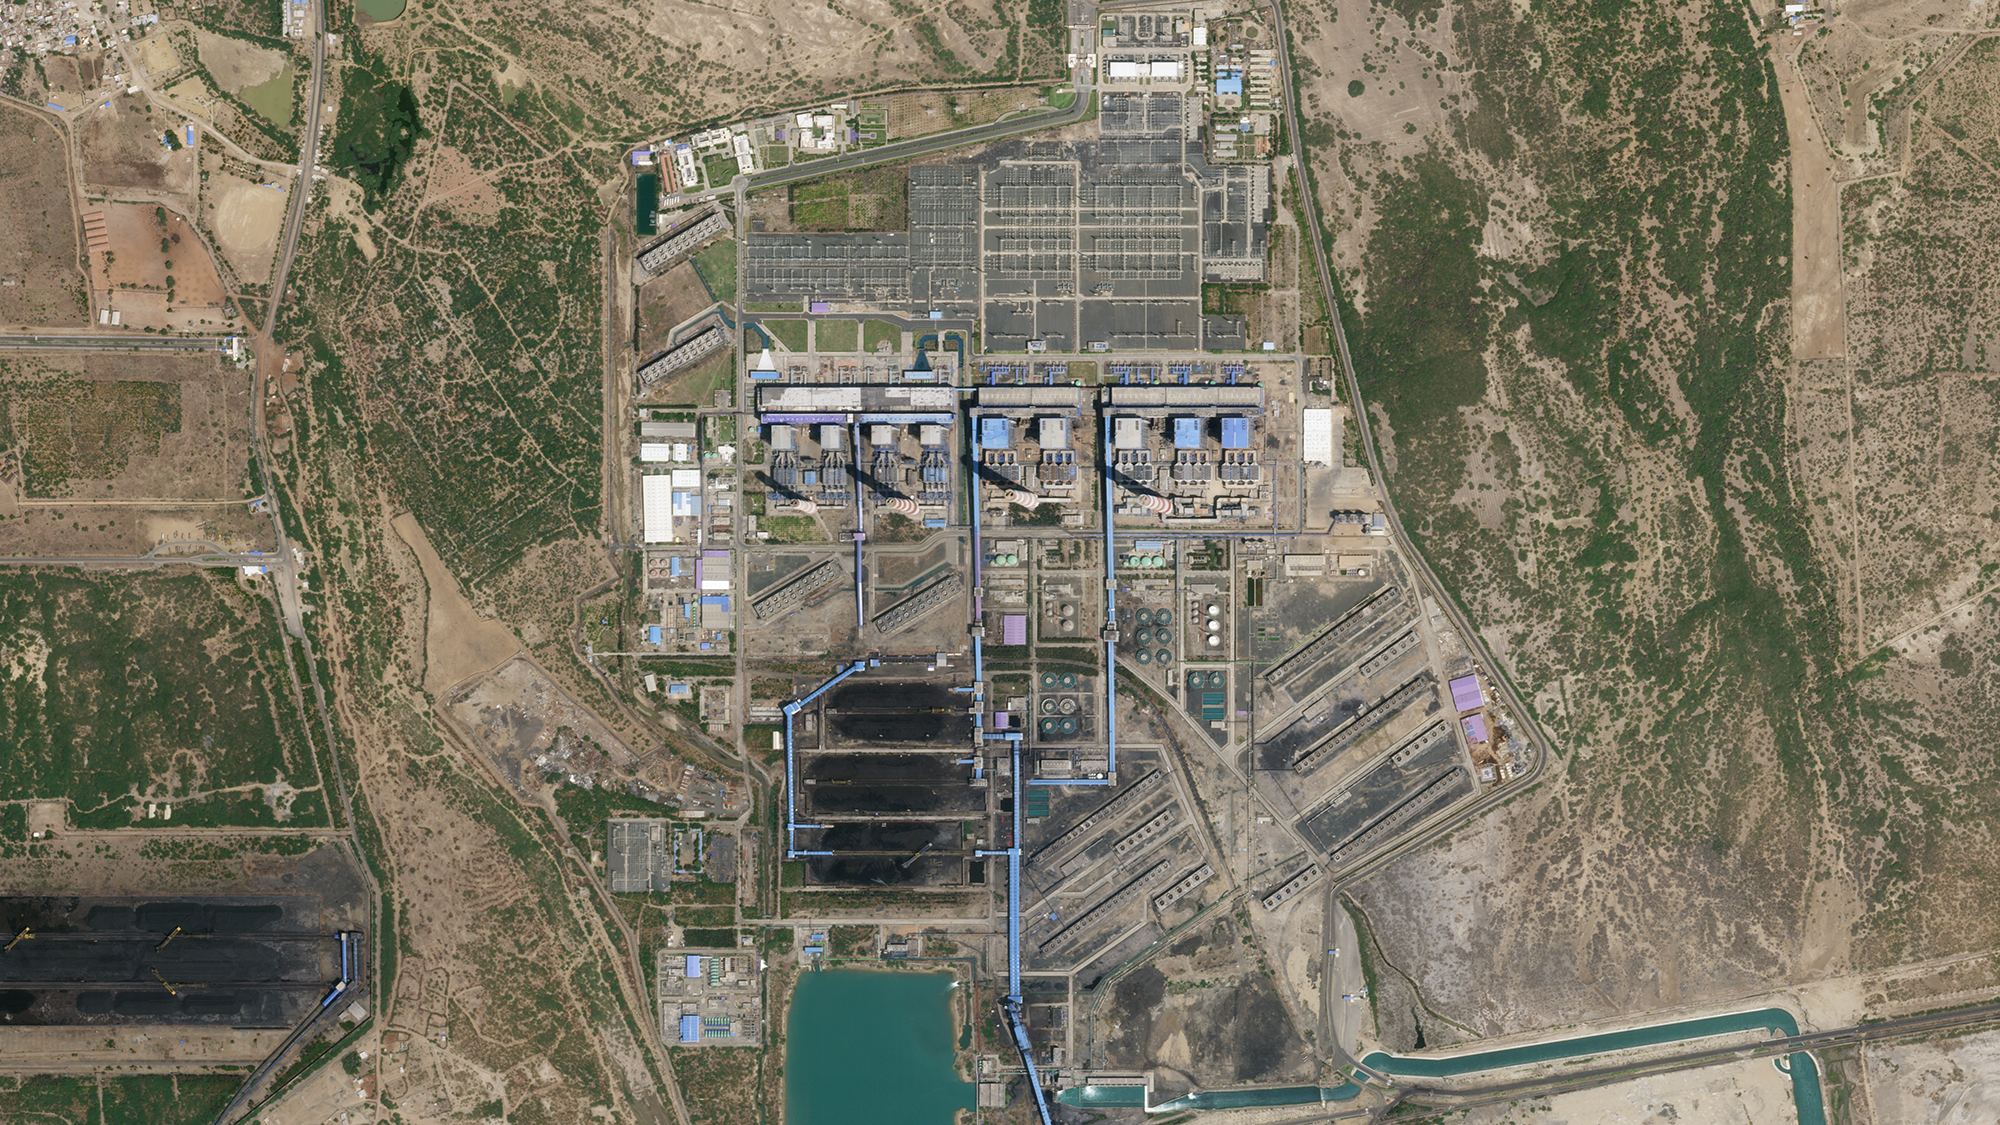 50 cm SkySat imagery of Mundra Coal Power Plant in Gujarat, India, on April 4, 2020. © 2020, Planet Labs Inc. All Rights Reserved.